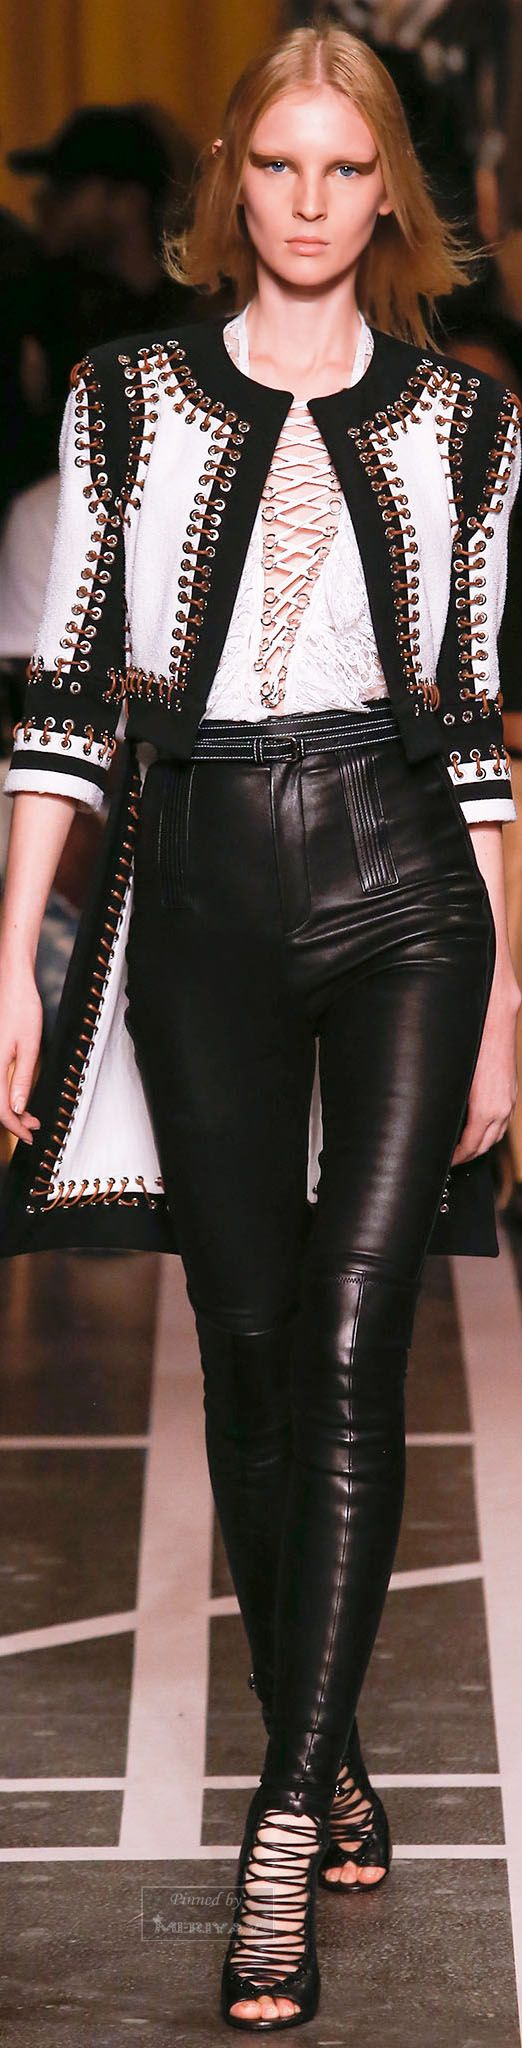 Givenchy.Spring 2015